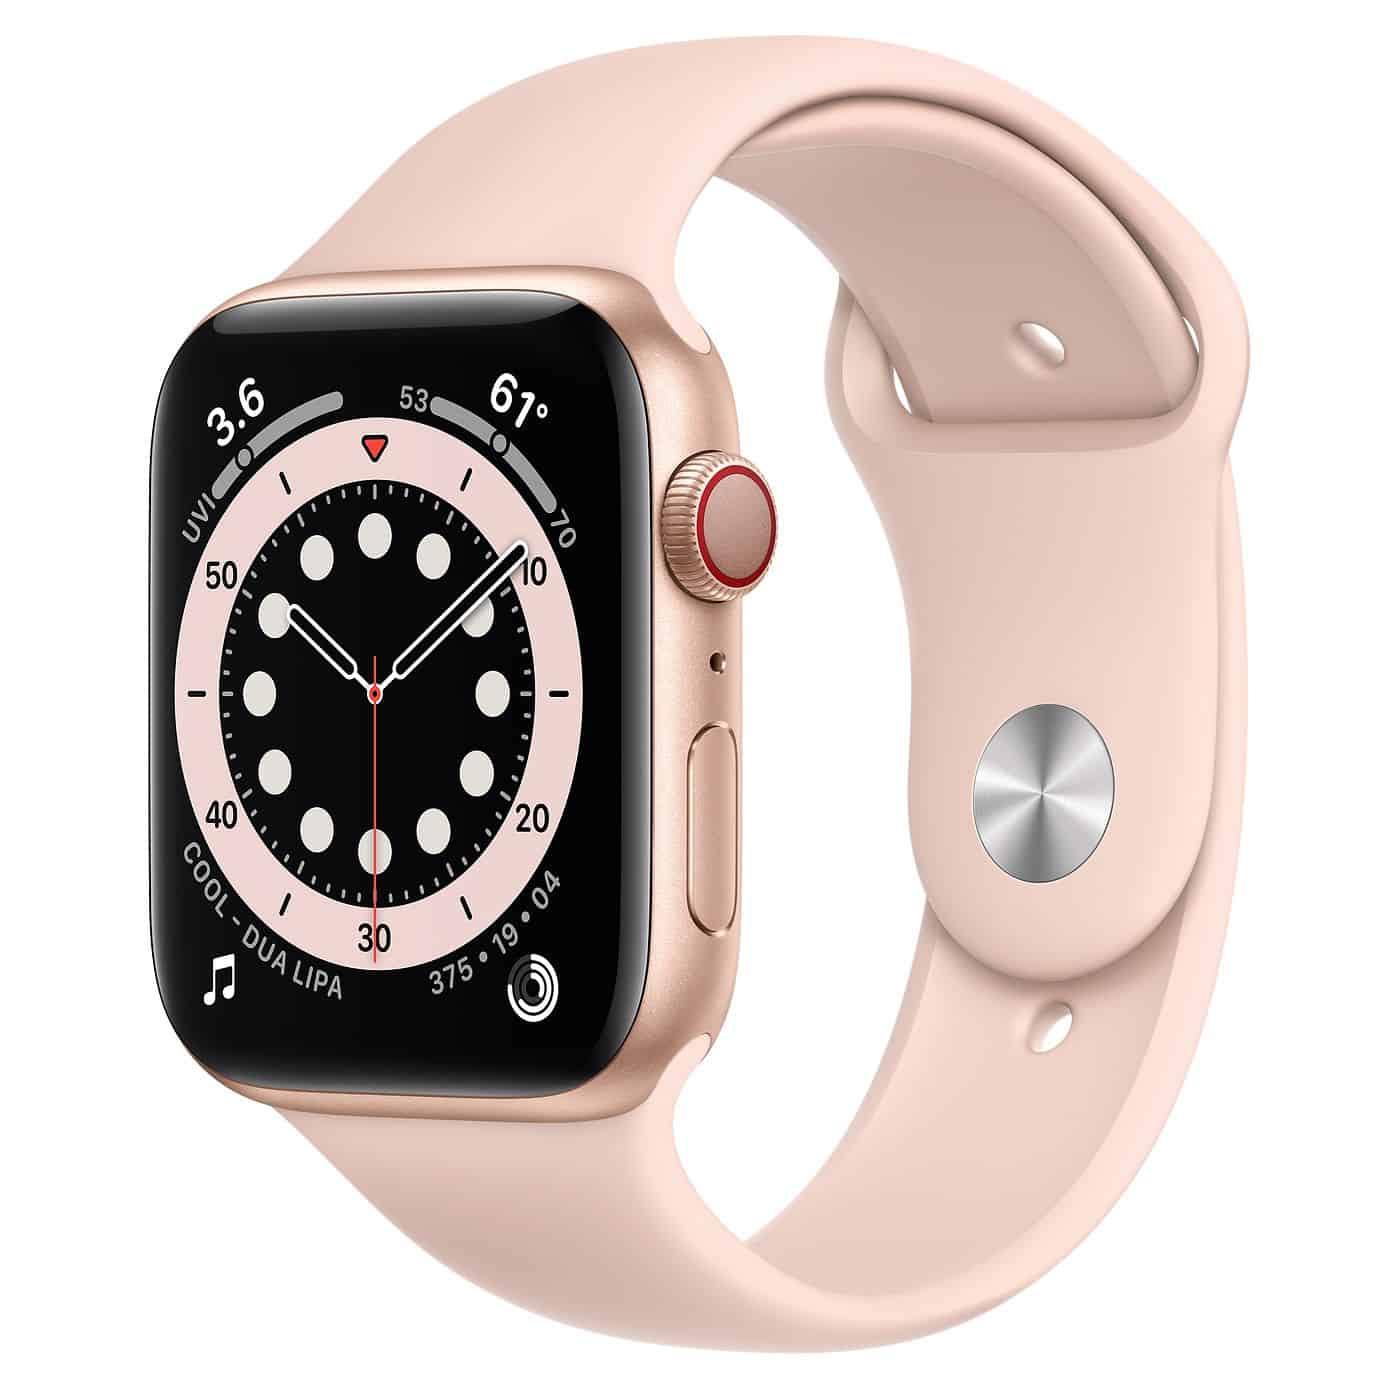 apple watch series 6 gps + cellular 44mm amazon (44mm aluminium silikon) silicon) azul (gps 44mm) aluminiumgehäuse silver silicone) 44 mm alumiini aluminum price (gps+4g) blue black friday best buy deals new - battery life costco stainless steel case gold (choose color) canada colors in dubai viền thép dây ebay edelstahl milanaise) edelstahlgehäuse graphite mm) silber ee edition titanium features for sale nike cellular) smartwatch fluoroelastomer fluorelastomer space grey hermès is there a can i get on my india usa qatar uae pakistan oman celular aço inoxidável inoxydable gps+cellular koperta kaufen milanese loop liverpool does have better media markt near me t mobile (gps+cellular) mit sportarmband milanaise (niebieski) navy gray officeworks optus opinie product(red) pink review red rose refurbished serie rosa (różowy-sport) esim rostfri stålboett aluminiumboett rymdgrå setup target at&t test trovaprezzi uk unlocked used worth it make verizon vs vodafone walmart white and with (złoty) sport band 32gb 40mm difference accuracy deep benefits (gps) bluetooth gray/black (m00h3ll/a) (mg133ll/a) capabilities charger distance from phone details how work ecg (cellular) e list fall detection full specification only sand gsmarena golf harvey norman to use jb hi fi tracking the information croma ireland john lewis just joggen ohne iphone kaina ksa kuwait kék lte là gì meaning model manual maps m00h3ae/a music calls what an mean when not working or reddit plus range running release date specs specifications tmobile time telstra tracker user unboxing se version waterproof without wifi youtube you text diferencia entre y your talk call add listen zonder (zwart) sportband złoty có nghe gọi được không đồng hồ đánh giá thông minh (2020) 2020 38mm 3 compatible nhôm cao su 5